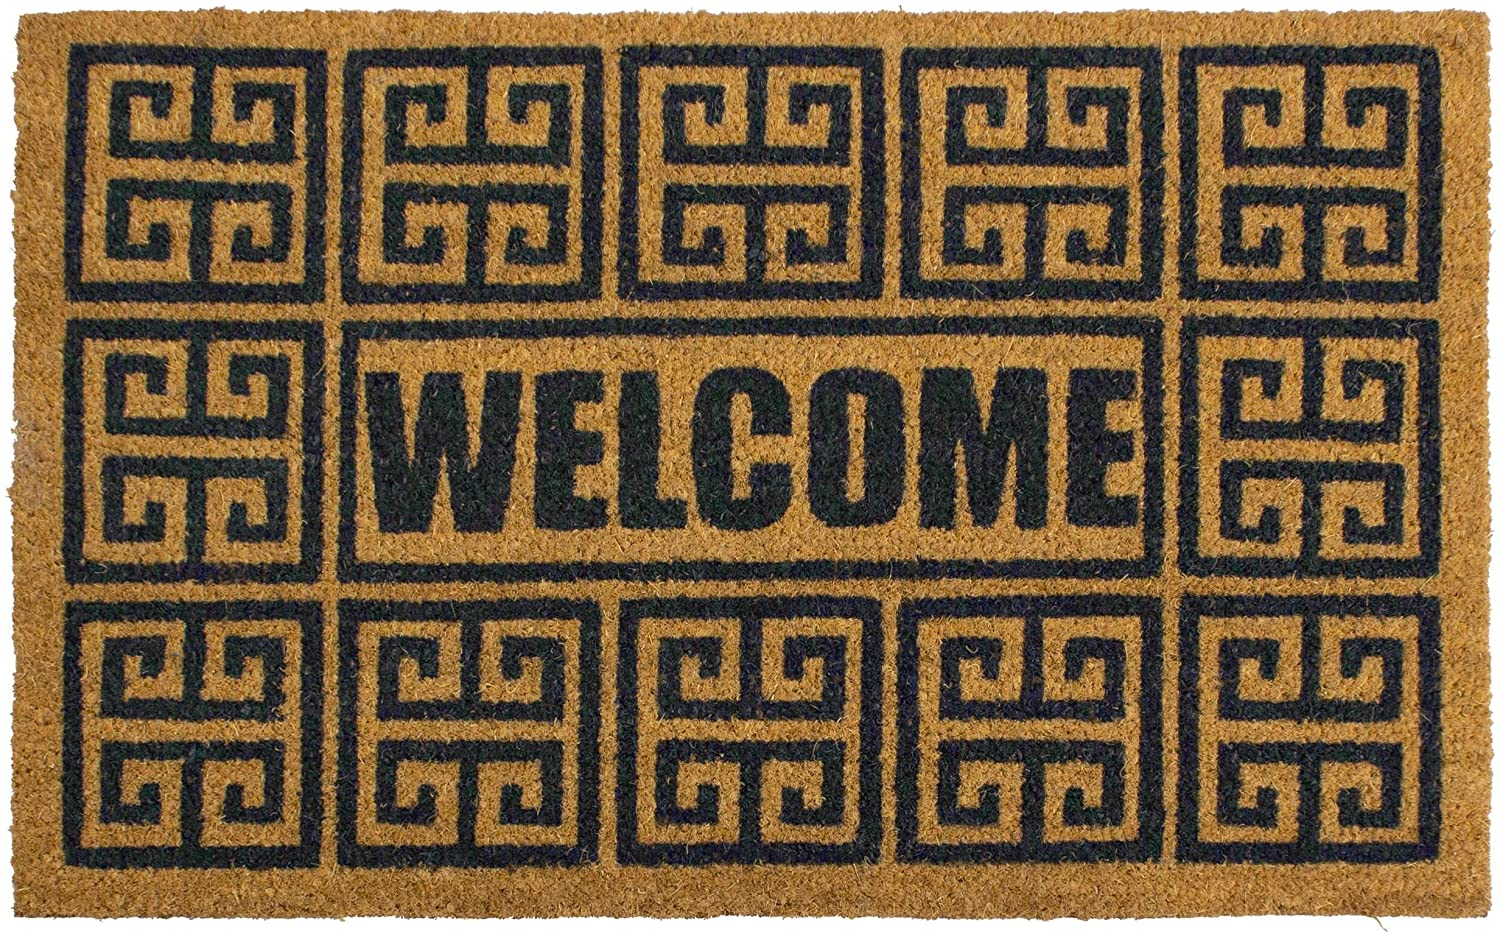 Stopper Greek Welcome 18x28 Indoor/Outdoor Coir Mat Black Modern Contemporary All Weather